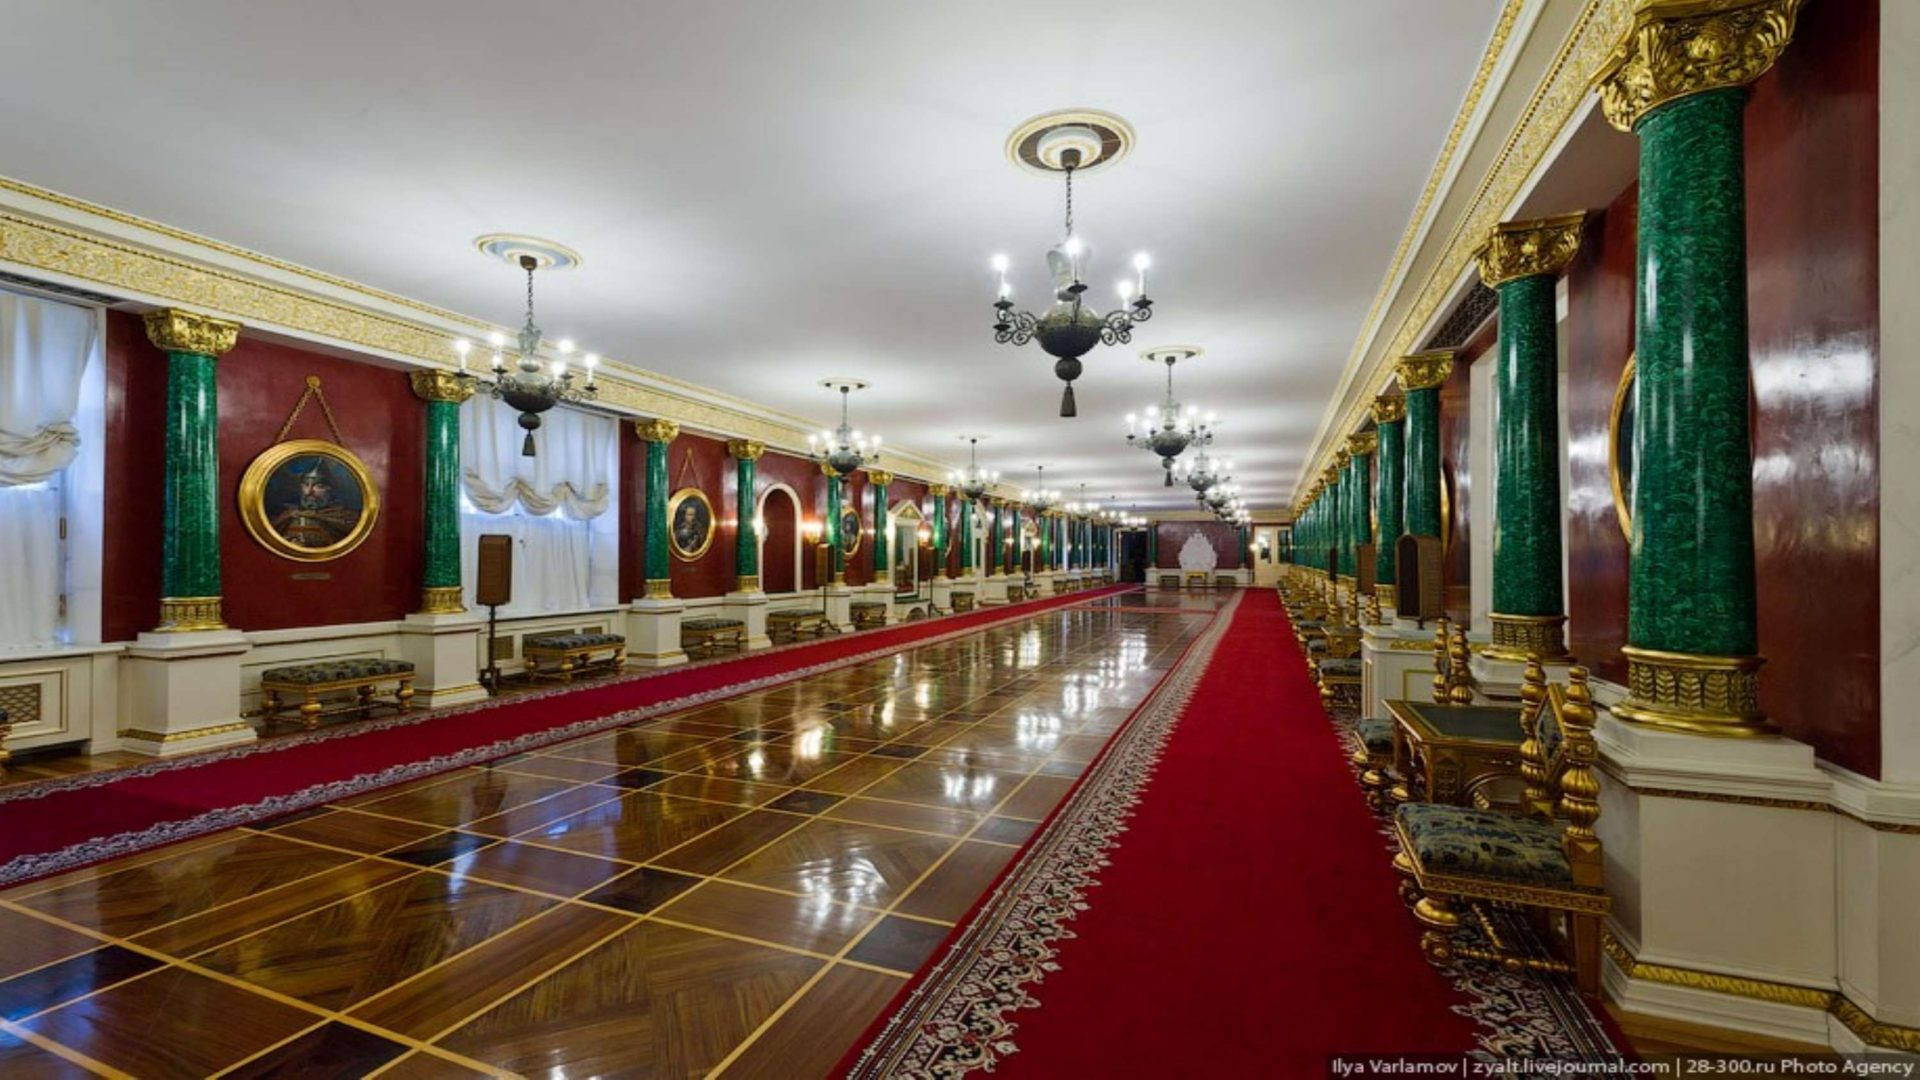 Iphone X Inside Wallpaper Hd Kremlin Palace Inside The Grand Kremlin Palace 23